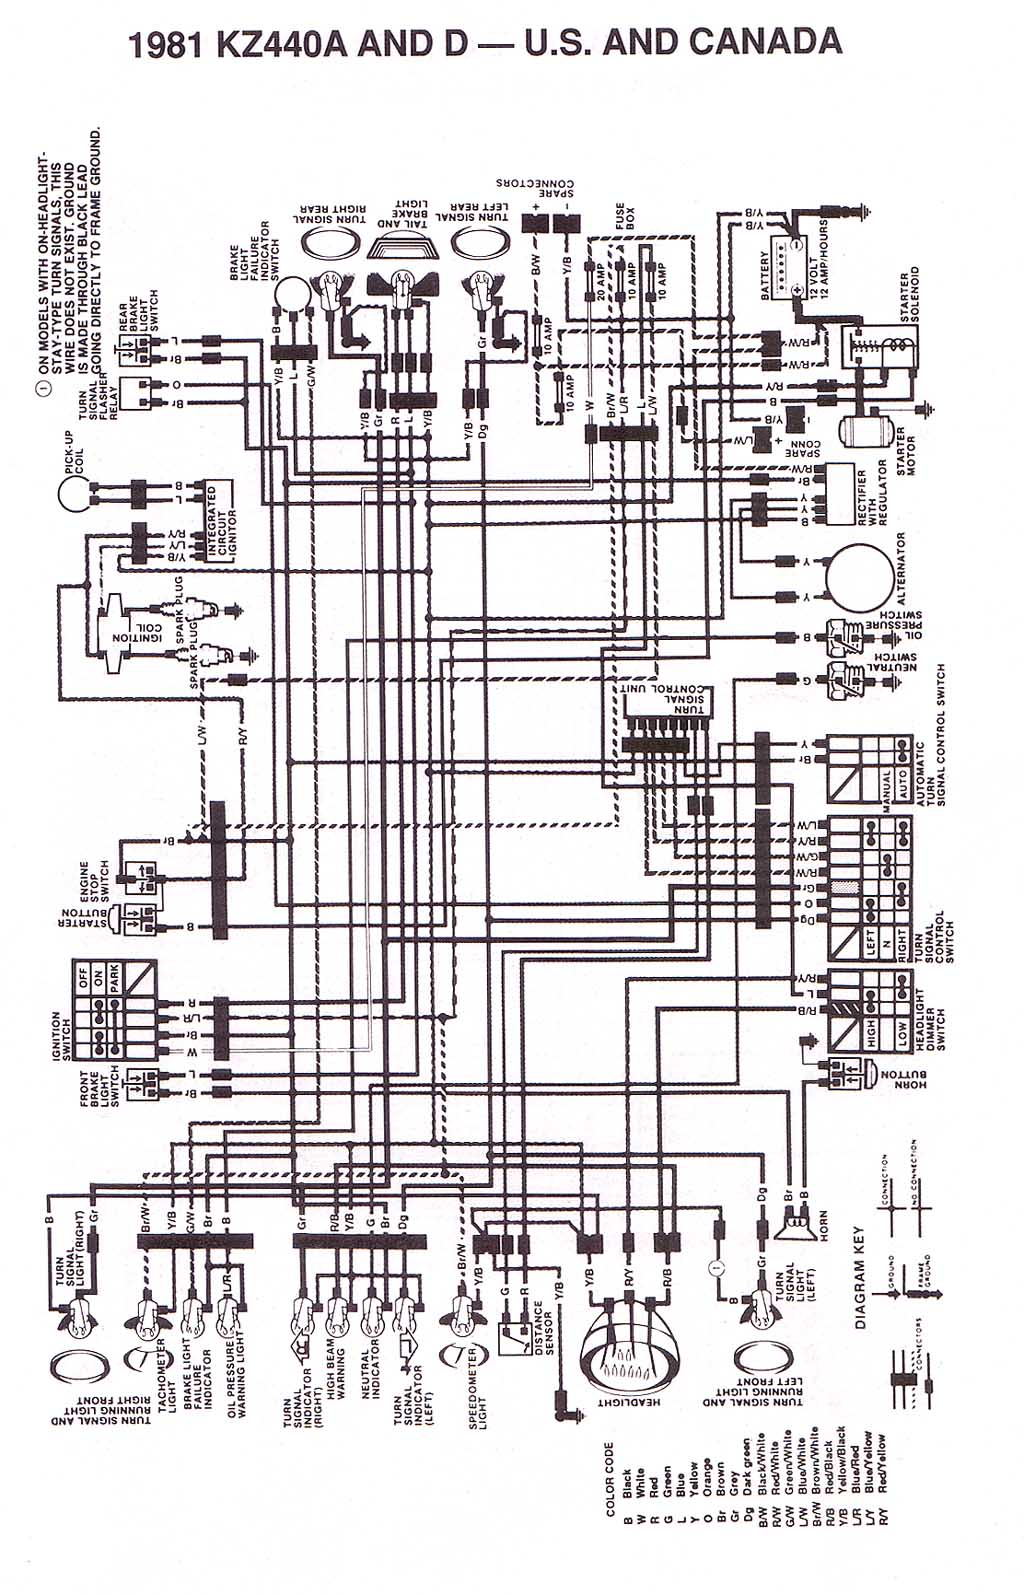 KZ440A and D wiring diagram (US) kz440 wiring diagram schematics wiring diagram